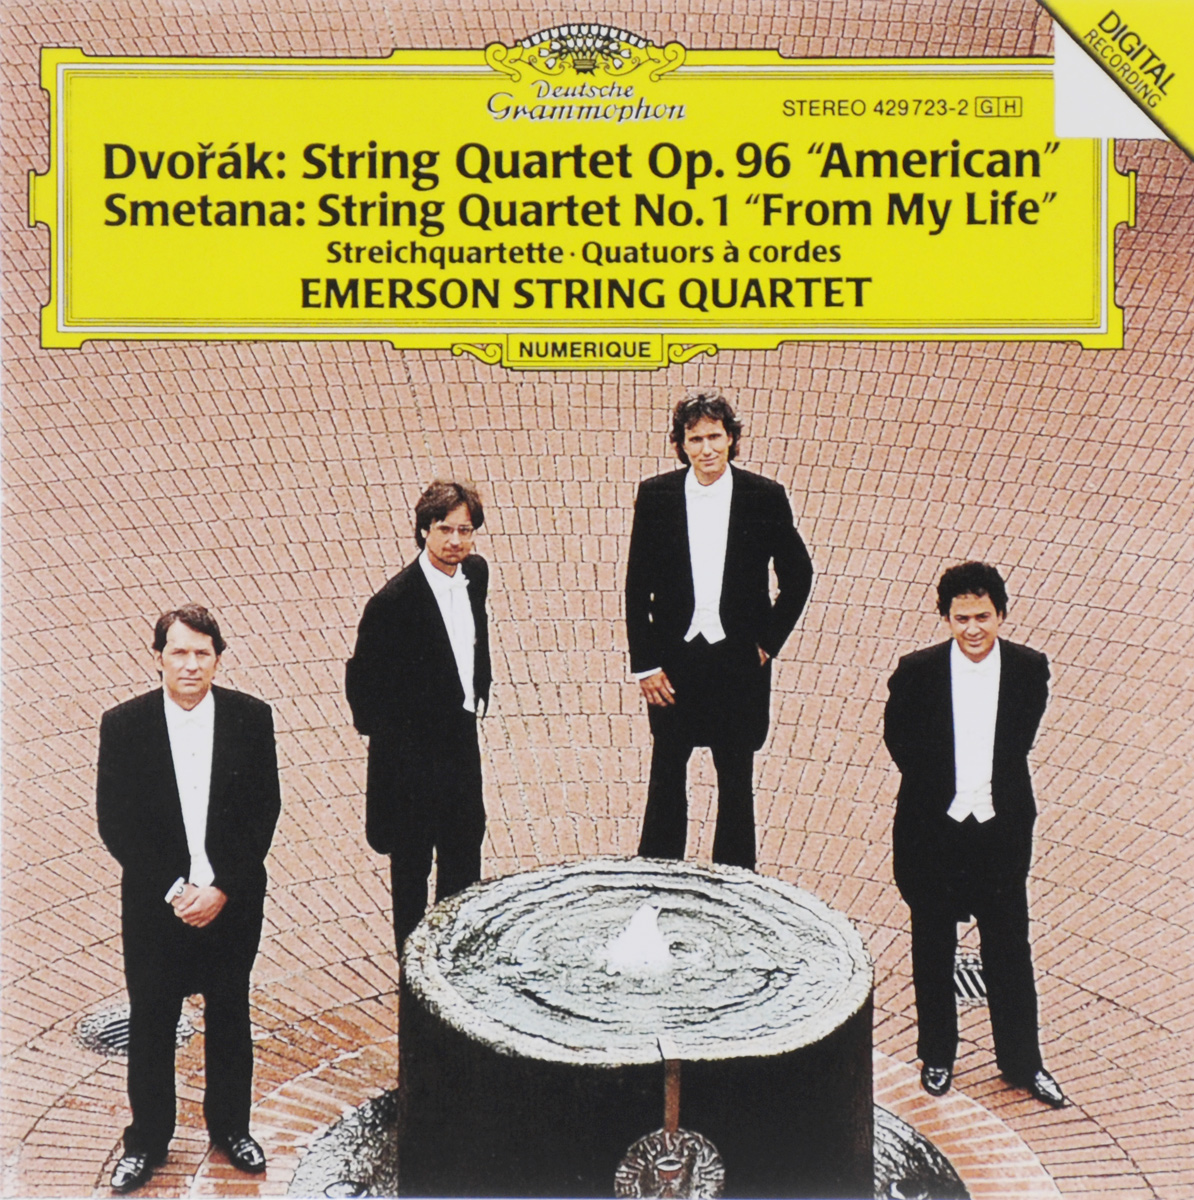 Emerson String Quartet Emerson String Quartet. String Quartet Op. 96 American / String Quartet No. 1 From My Life журнальный столик в стиле хай тек васко ст 80 05 белый глянец